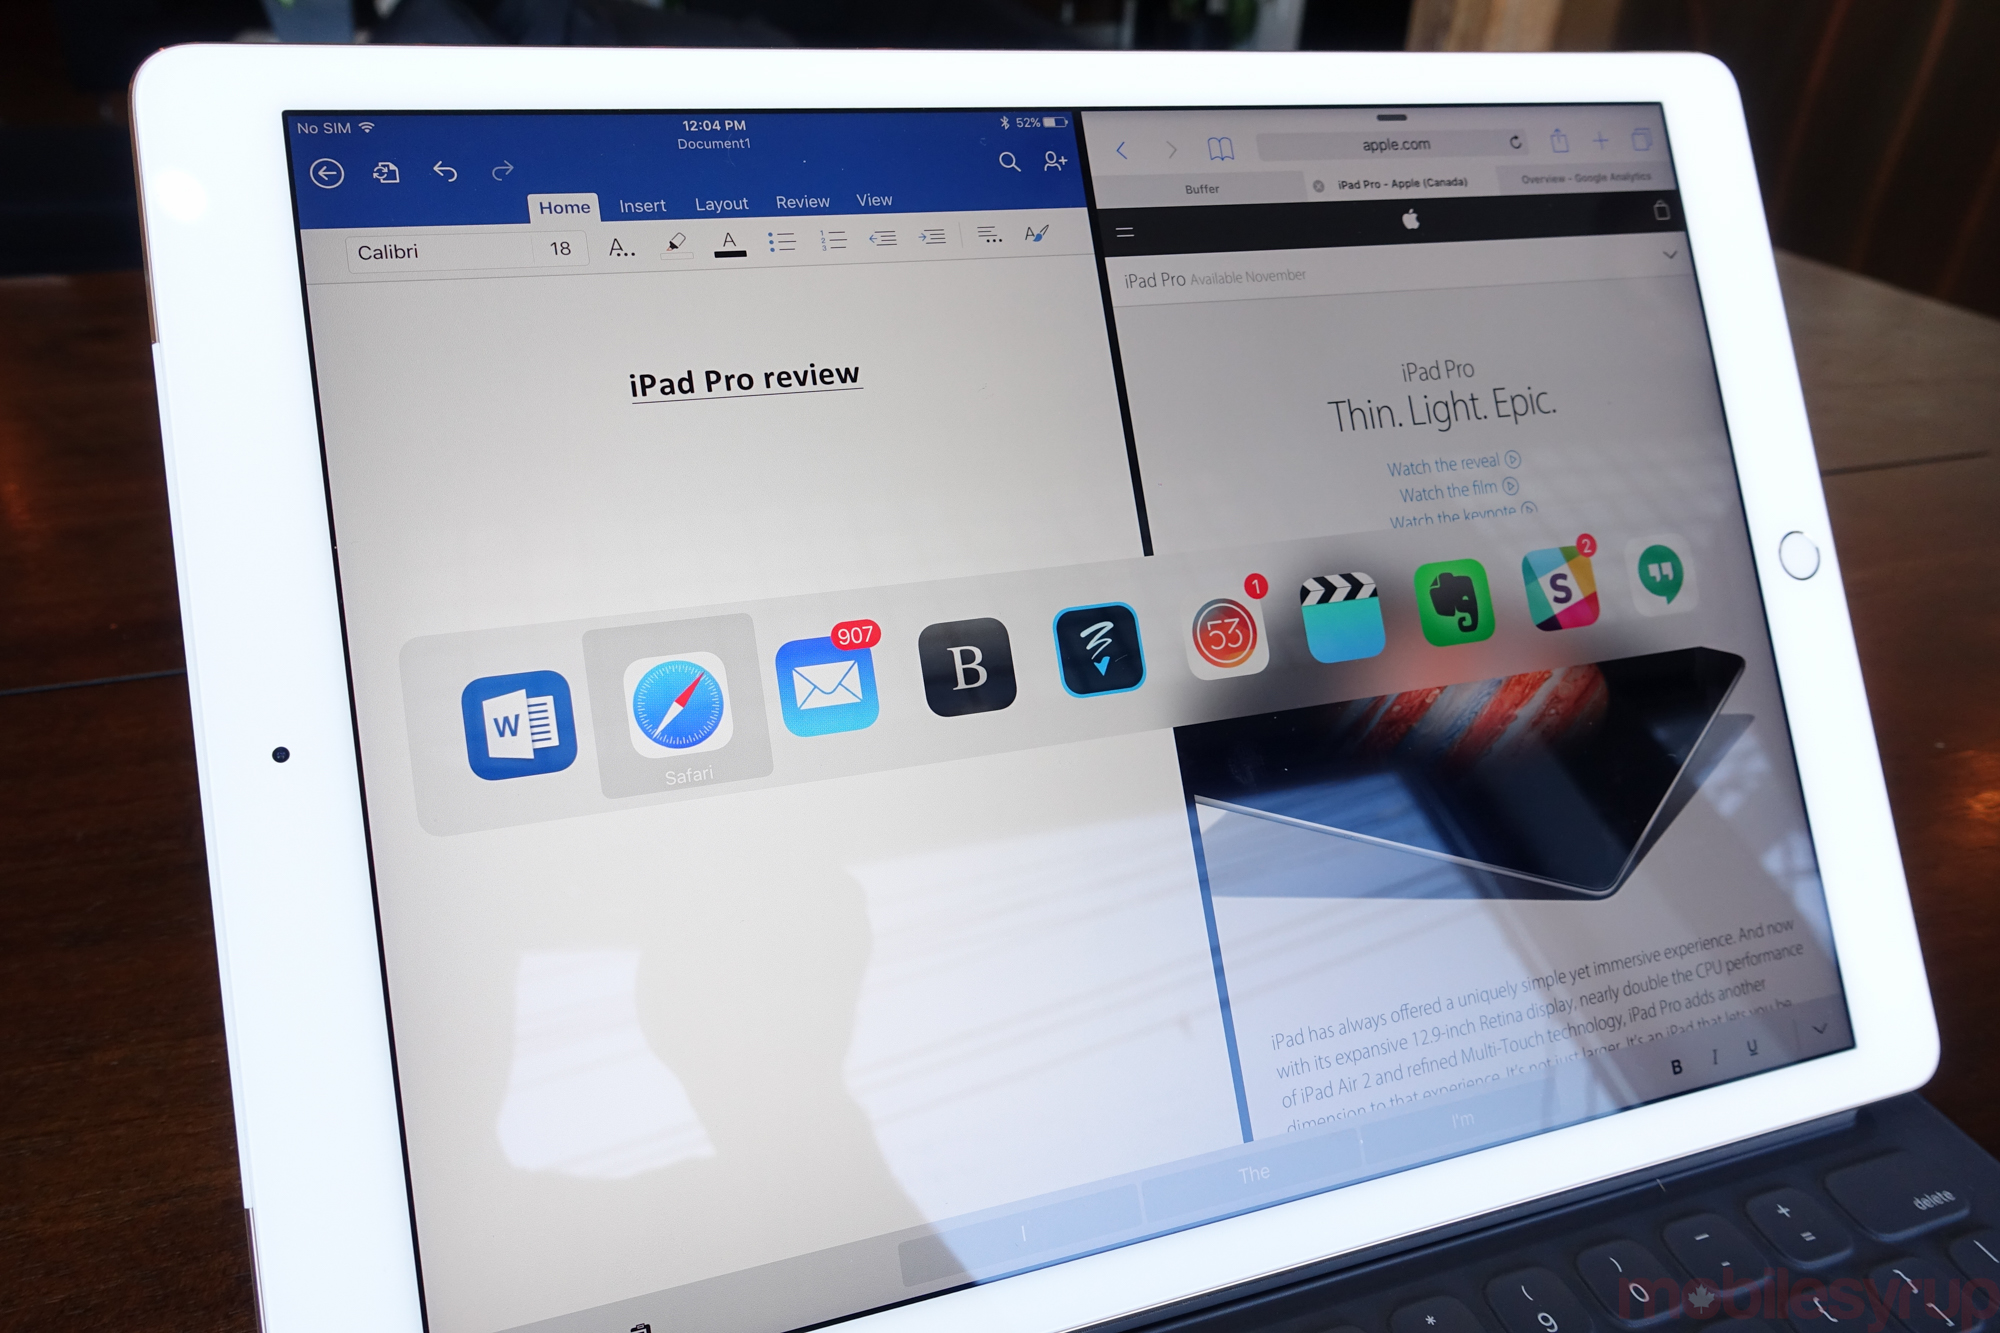 ipadproreview-01738